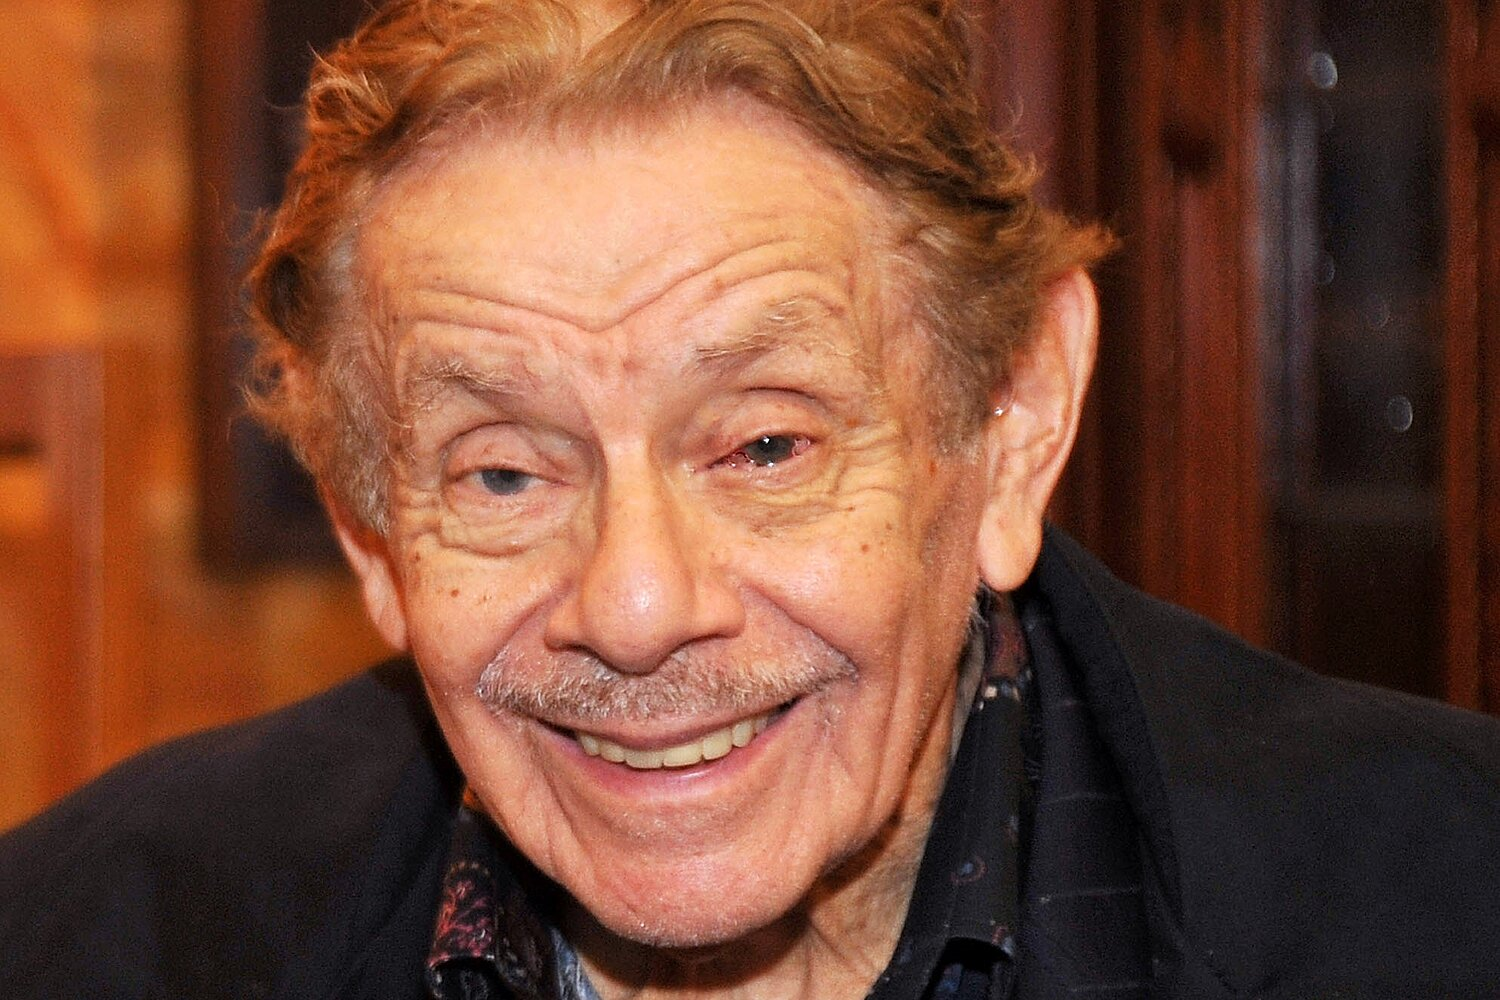 Jerry Stiller Dead Comedian Seinfeld Actor Dies At 92 Ew Com Easily move forward or backward to get to the perfect spot. https ew com tv jerry stiller comedian seinfeld actor dies